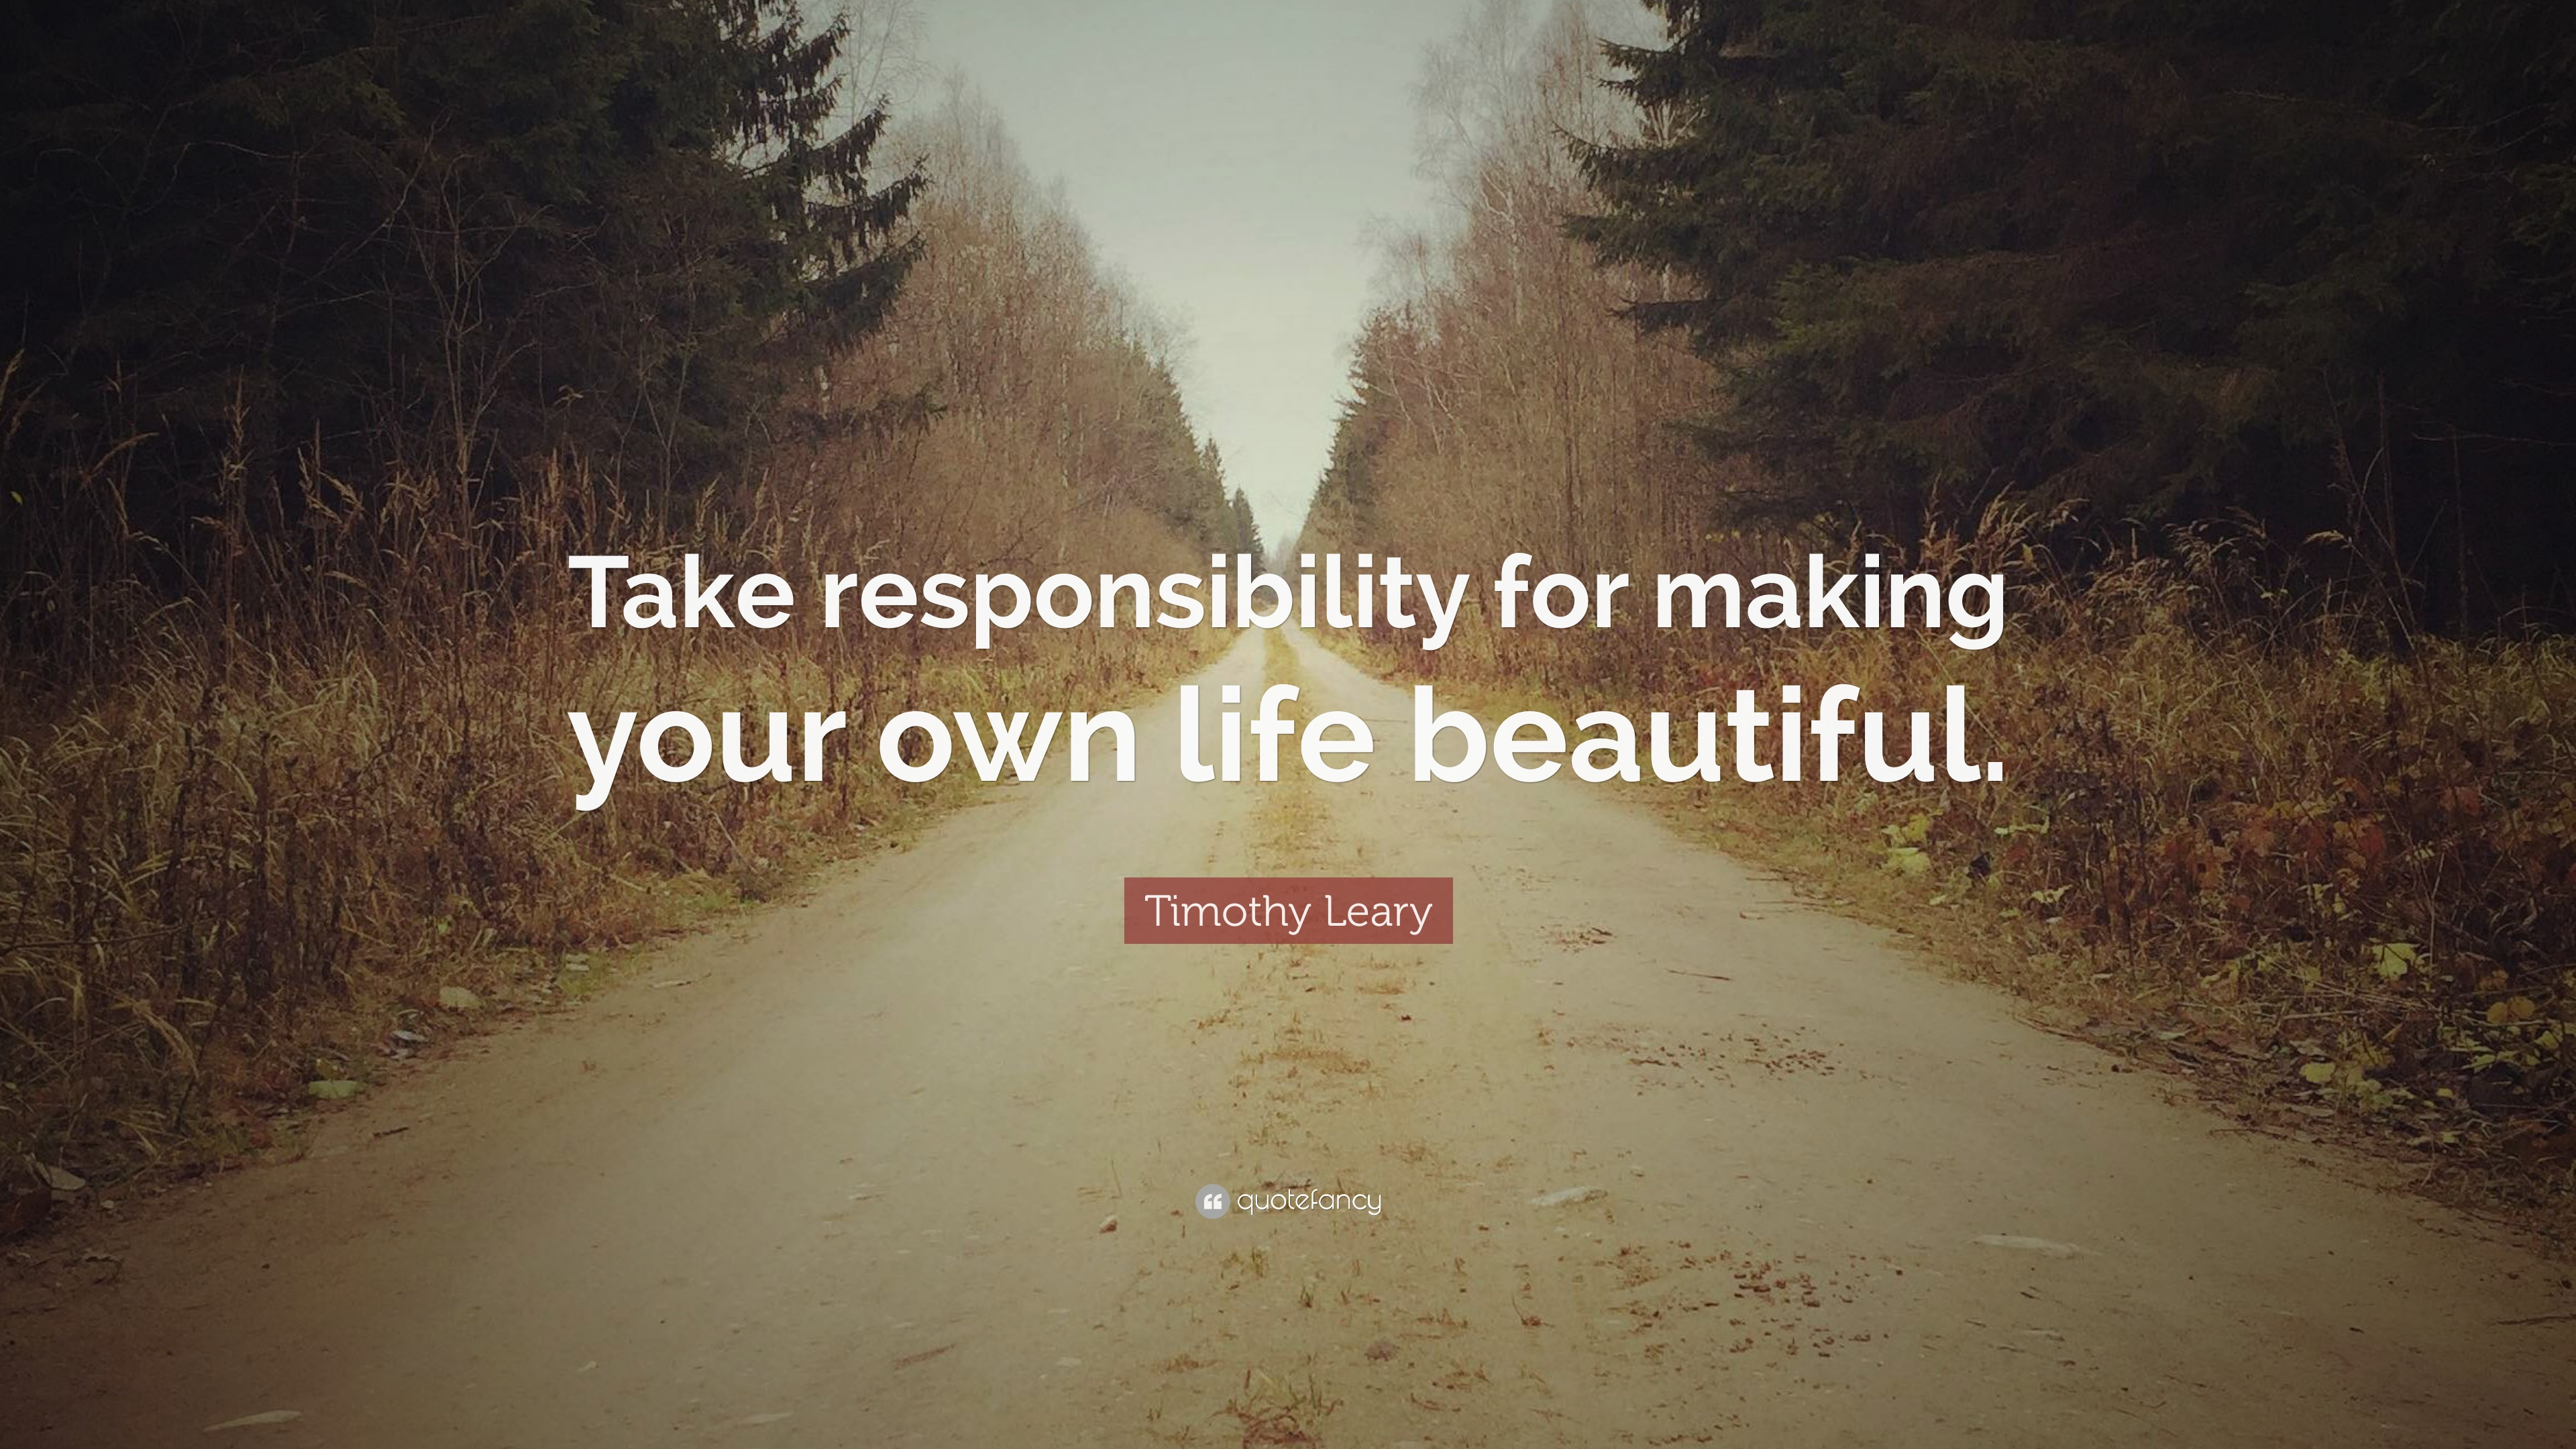 Timothy Leary Quote: U201cTake Responsibility For Making Your Own Life Beautiful .u201d